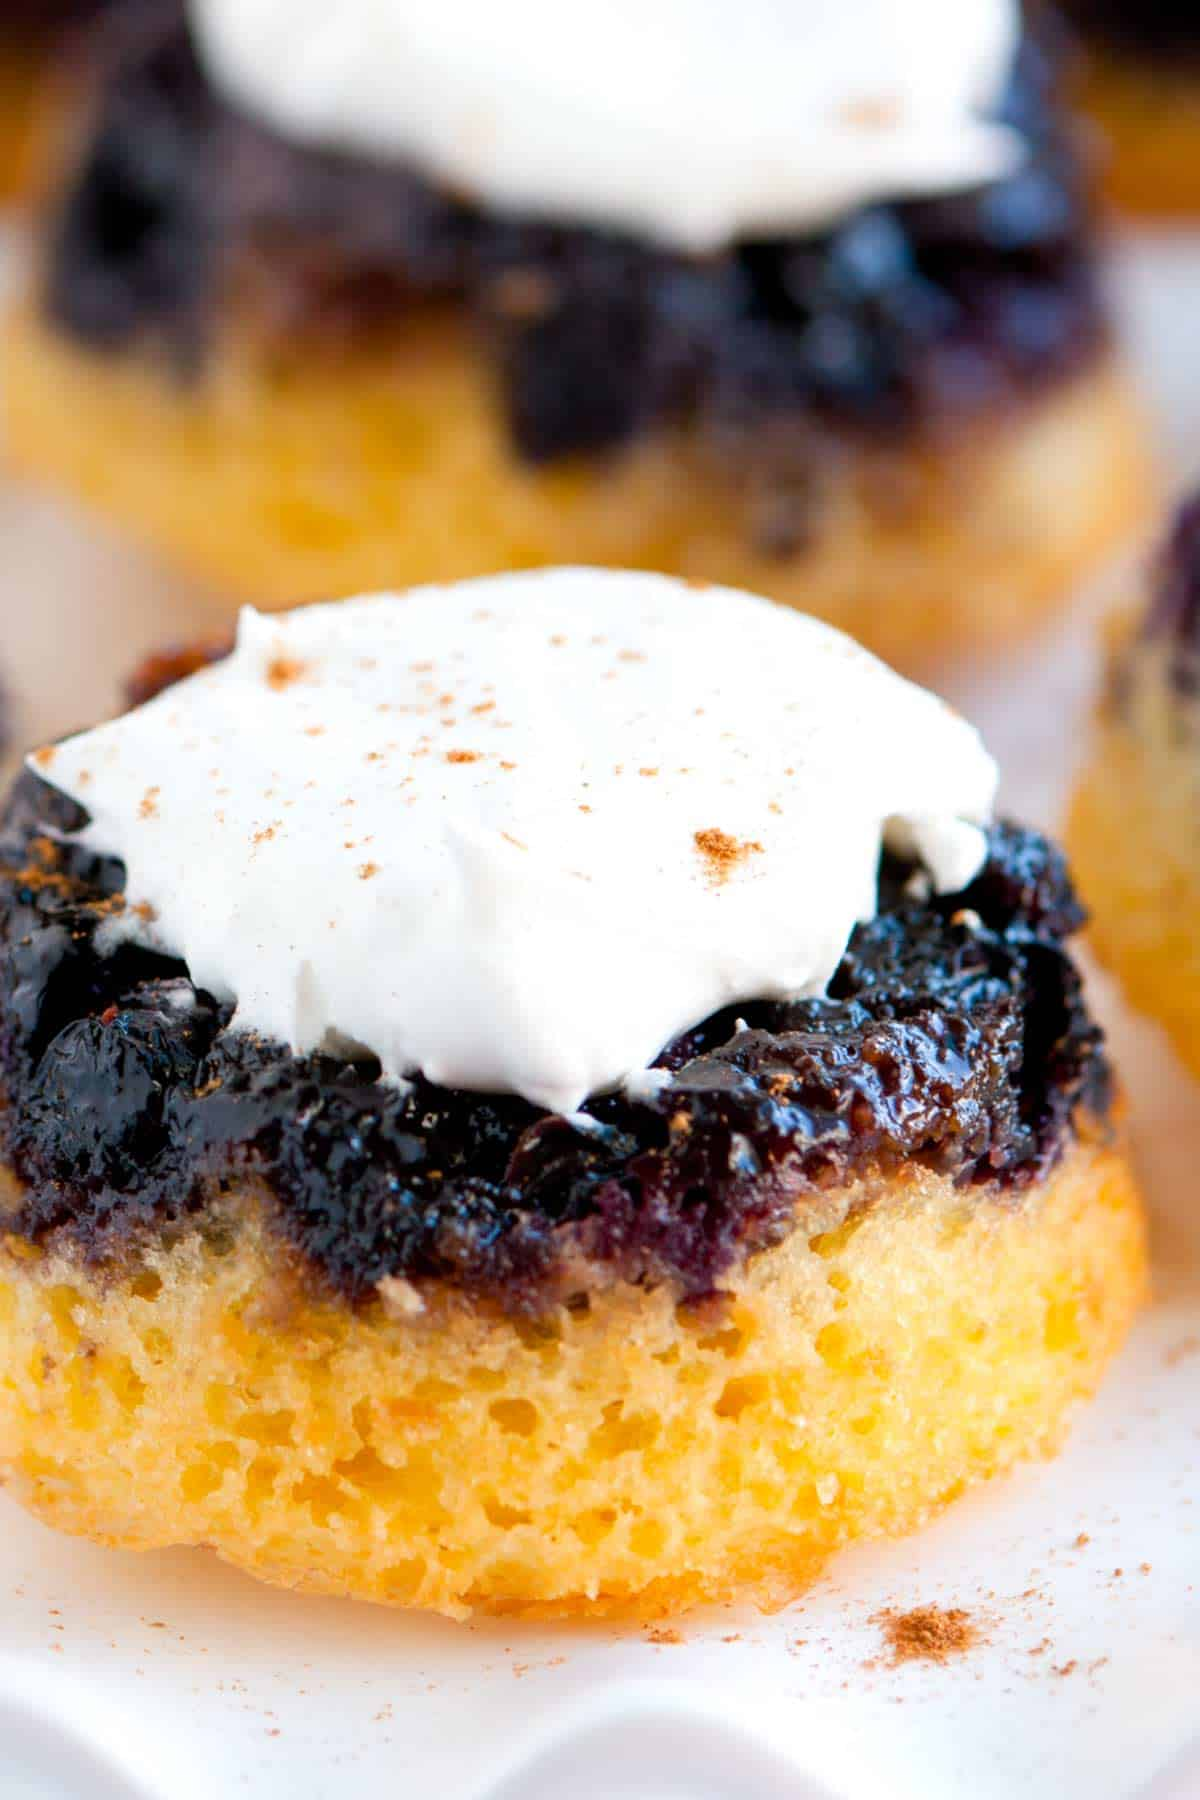 How to Make Mini Blueberry Cakes